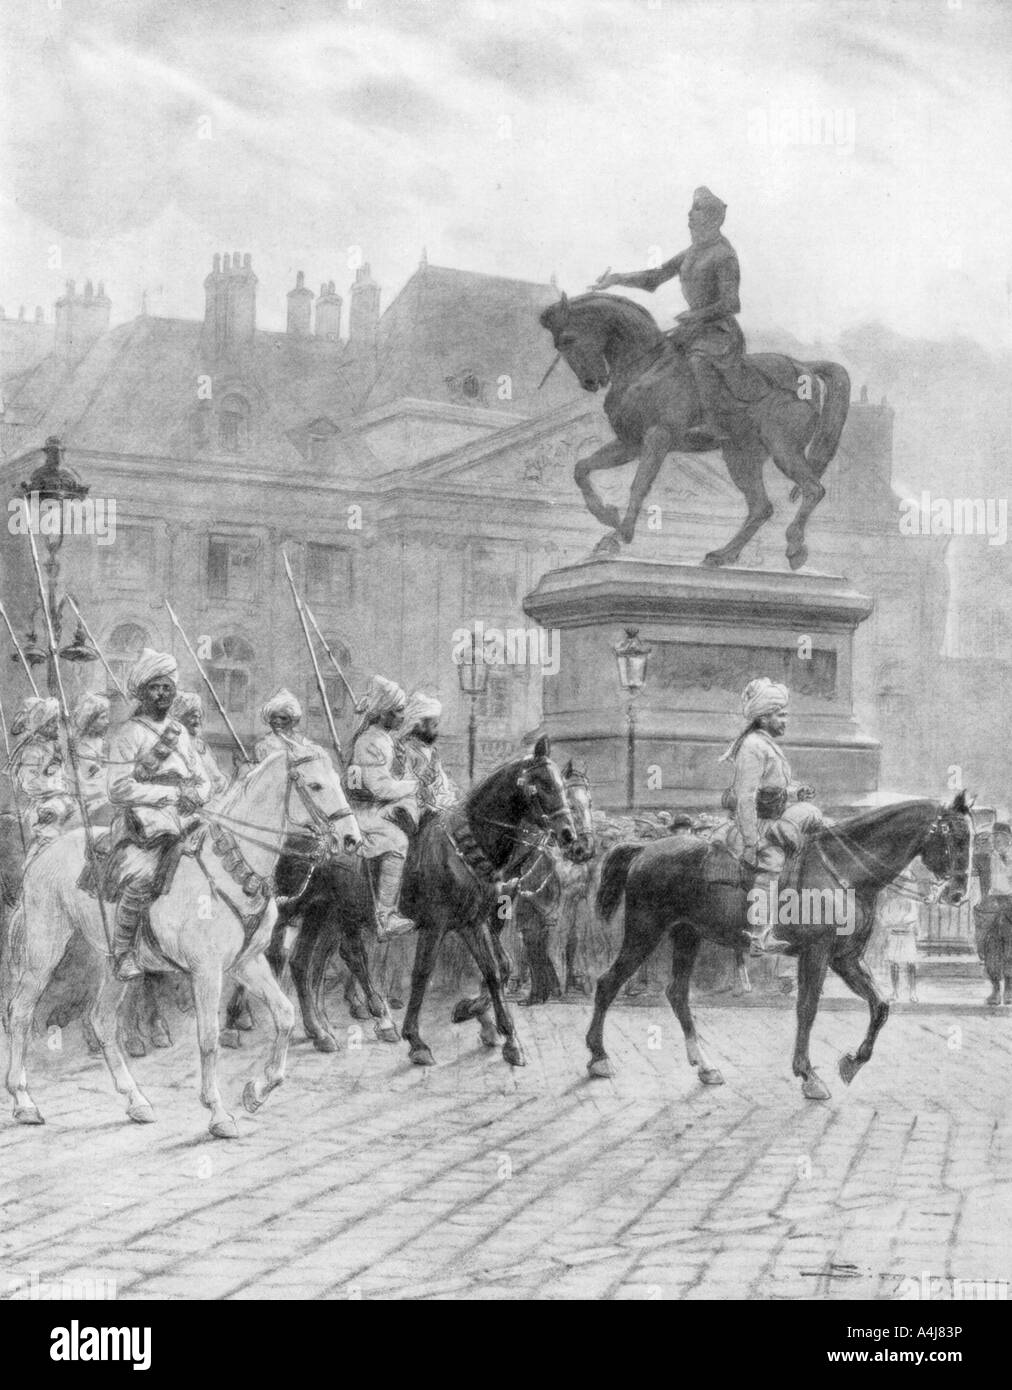 'Bengal Mounted Lancers passing the statue of Joan of Arc', France, 1914, (1926).Artist: J Simont Stock Photo